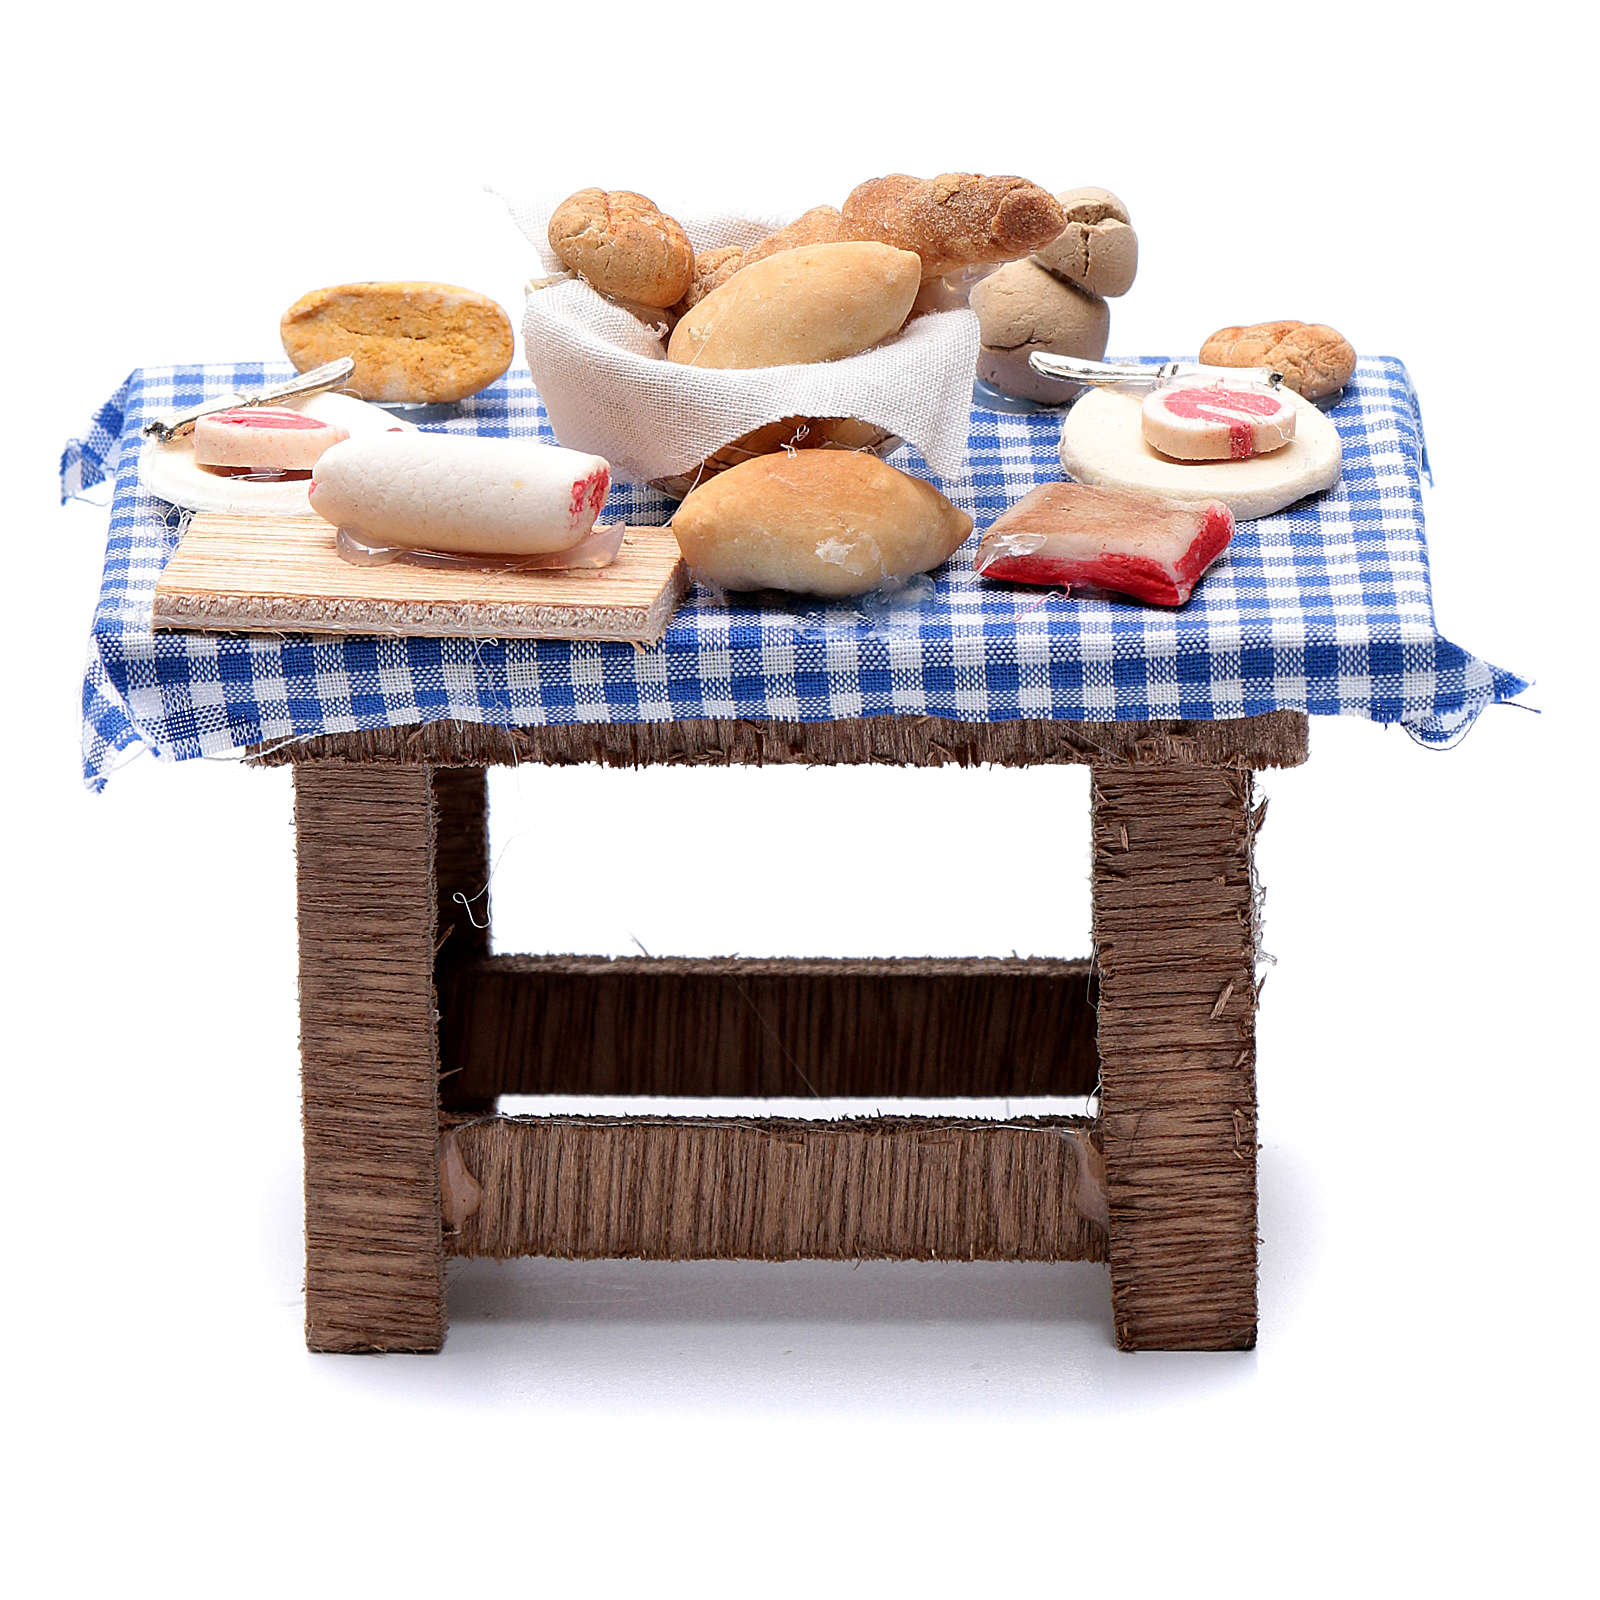 Neapolitan nativity scene table with food and chequed tablecloth 10x10x5 cm 4